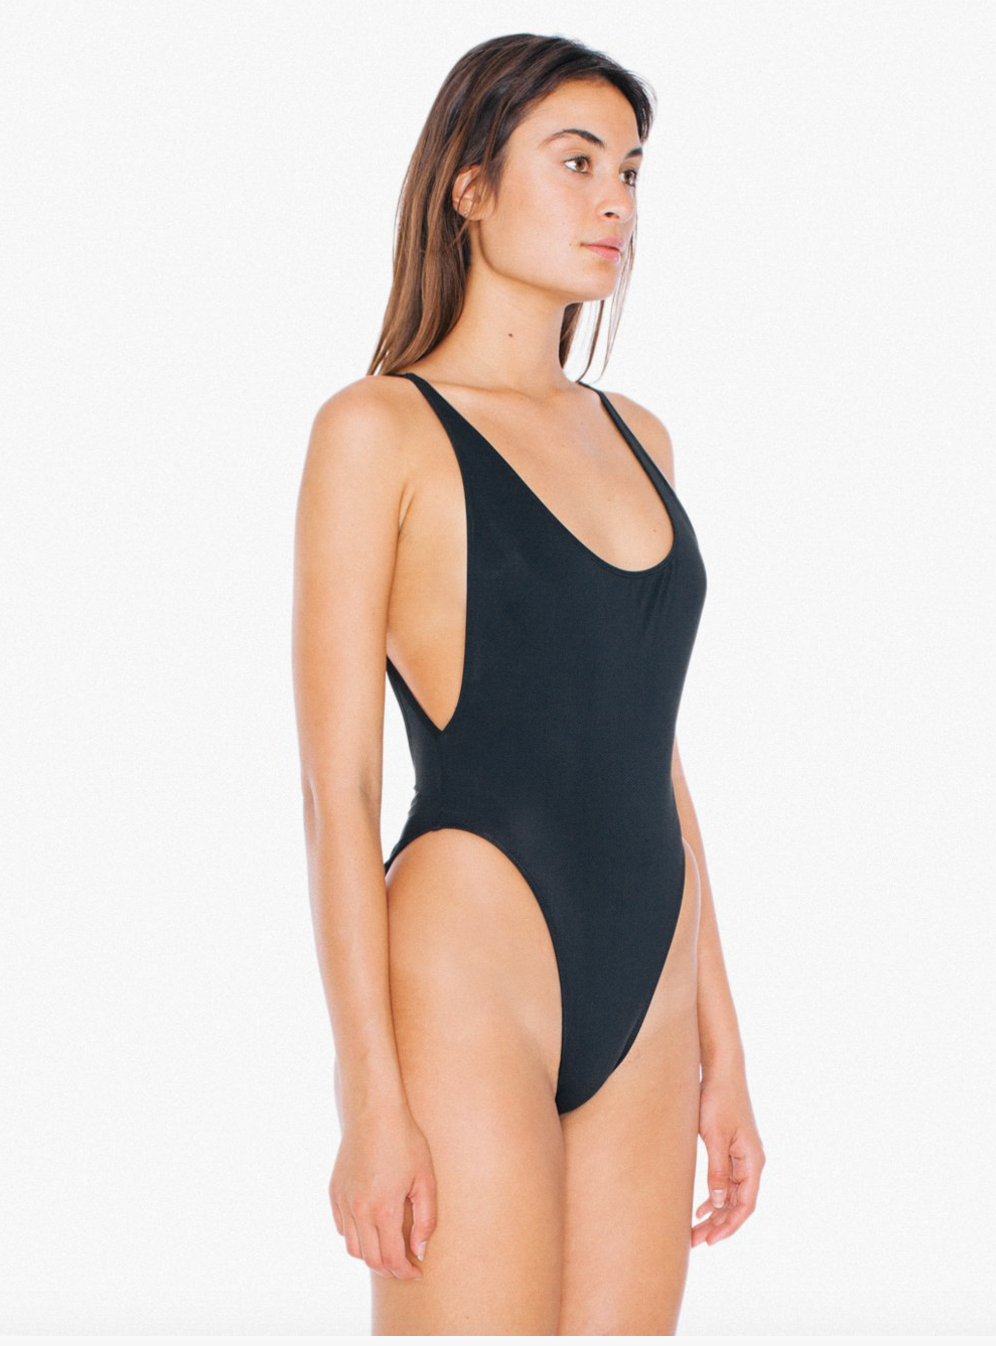 Nylon Tricot High-Cut One-Piece $27 / This bodysuit is very  Bella Hadid  and the back is so sexy! AA has always killed the bodysuit game so if you need a serious one, get it now. Also their shiny  leggings  are going fast which you could wear with this and on game days!